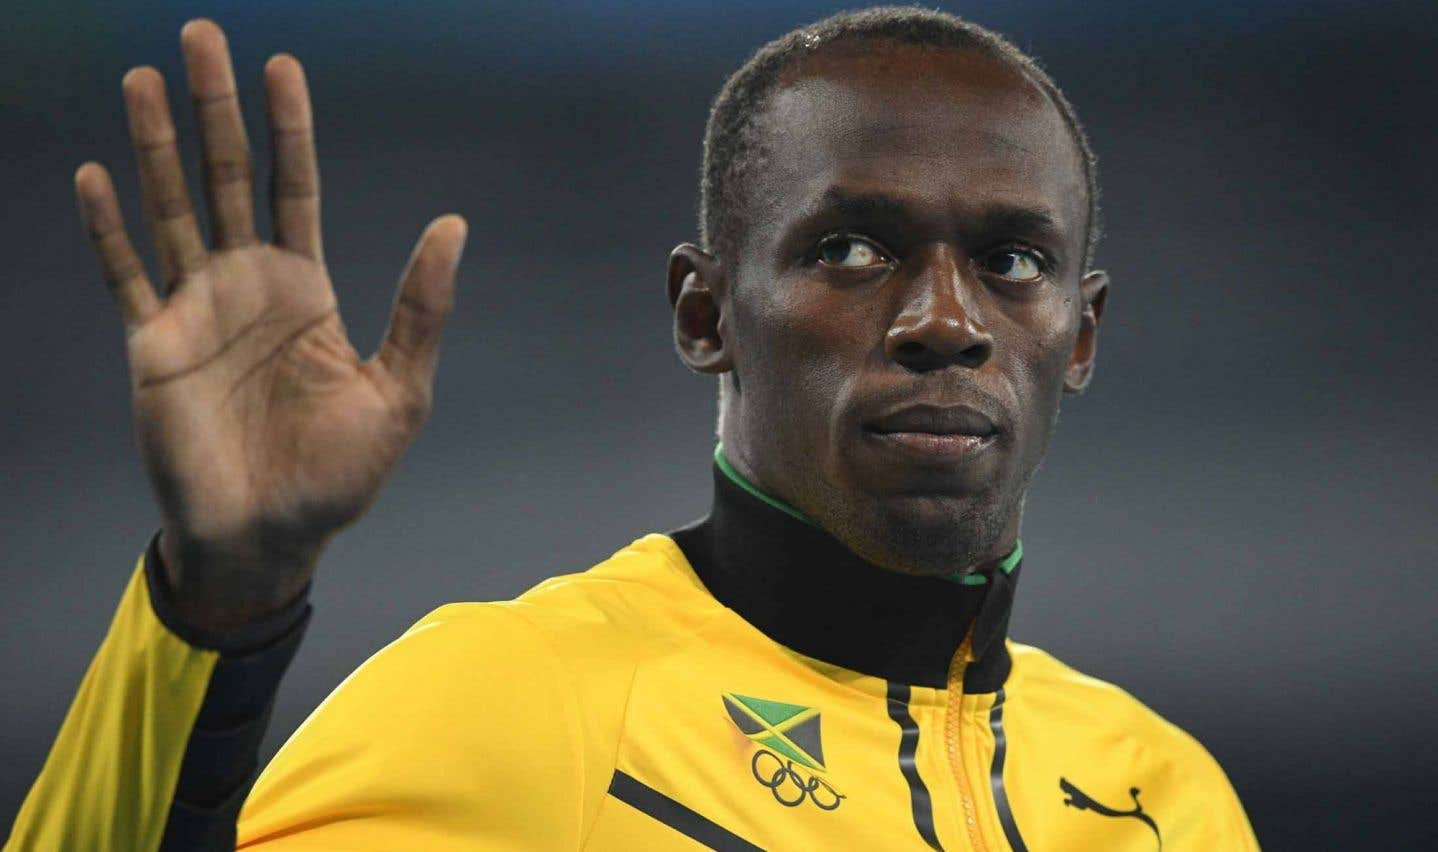 L'octuple champion olympique Usain Bolt